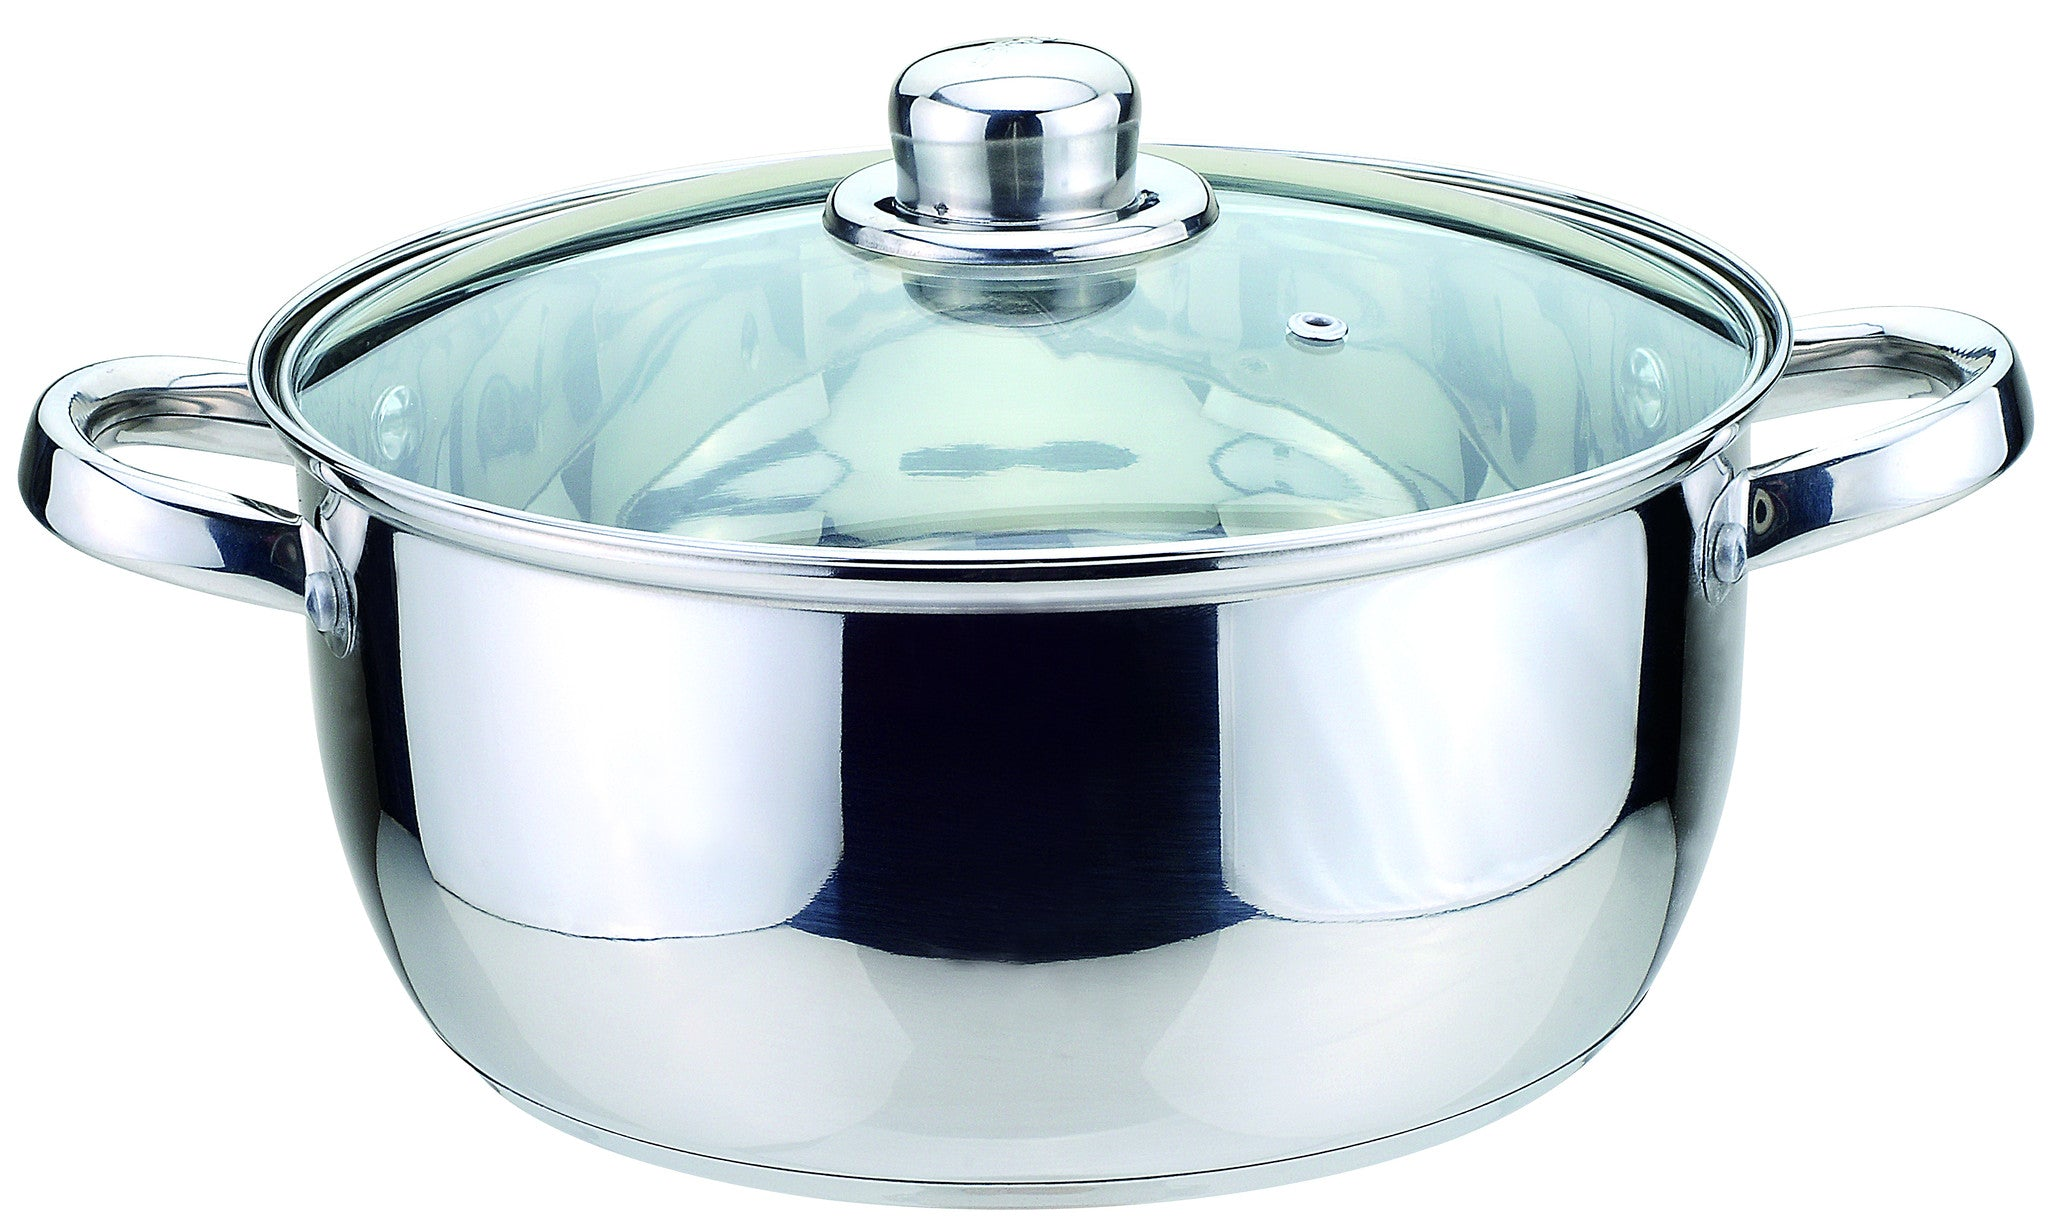 Sabichi 24cm Essential Casserole with Glass Lid-93783 - Homely Nigeria